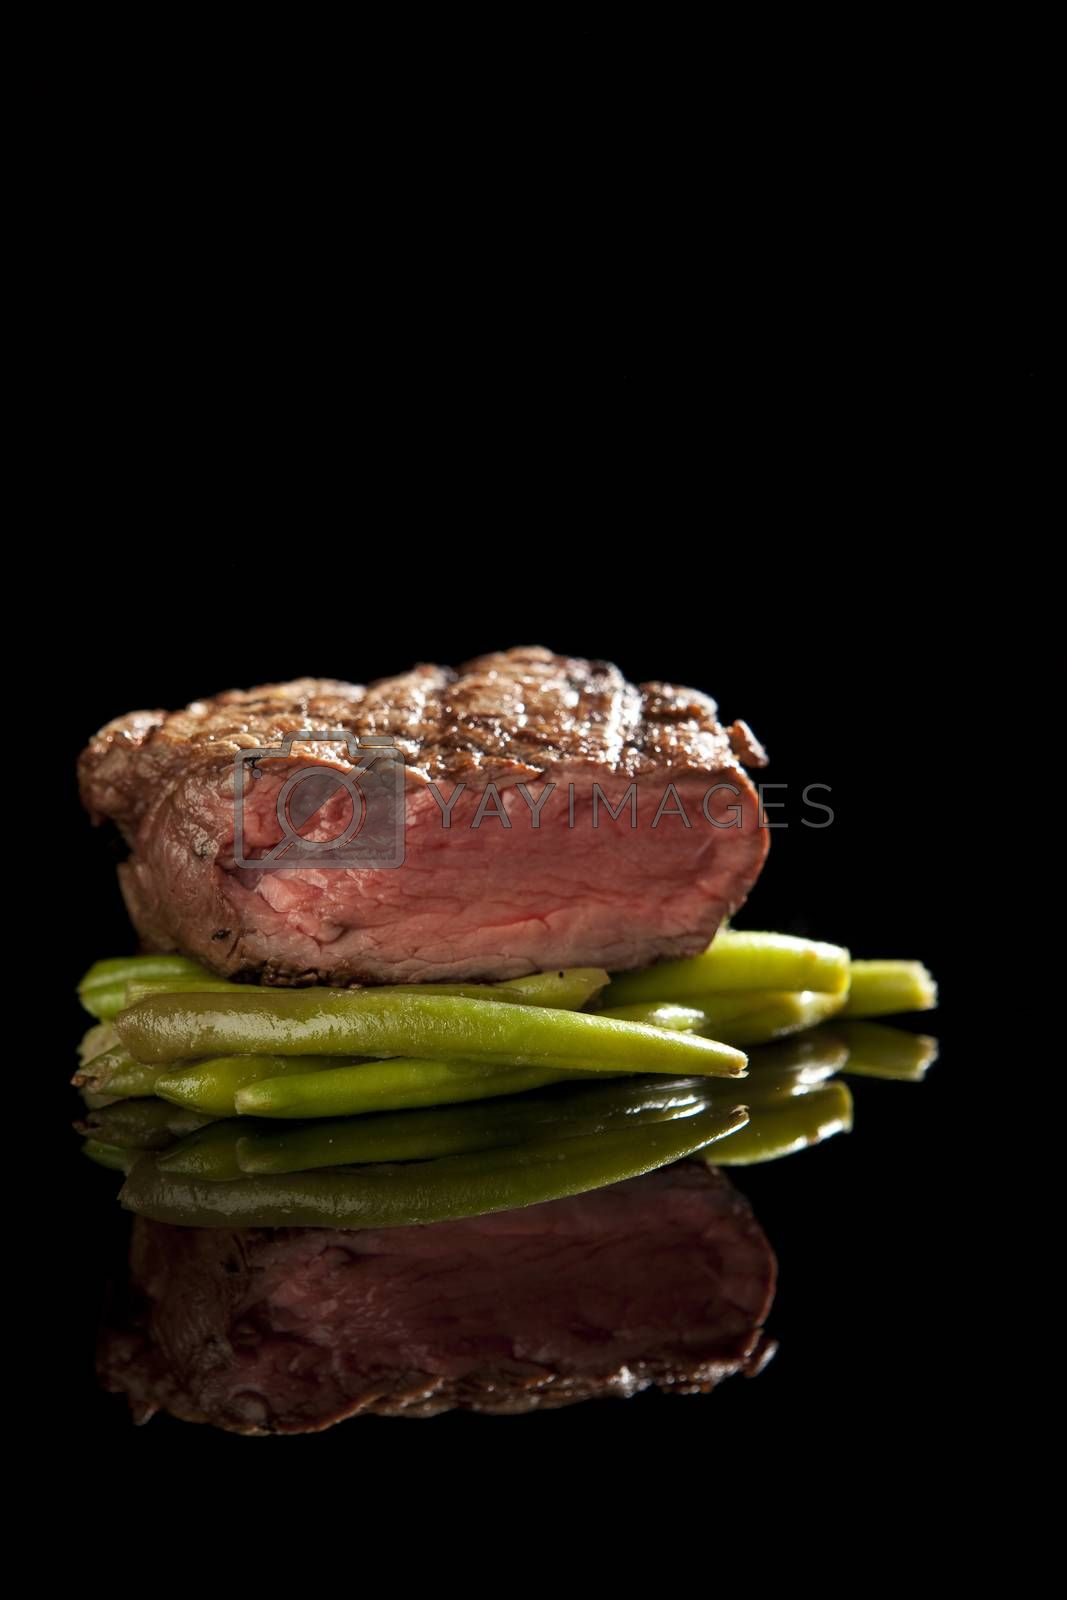 beef steak on black background with beans.